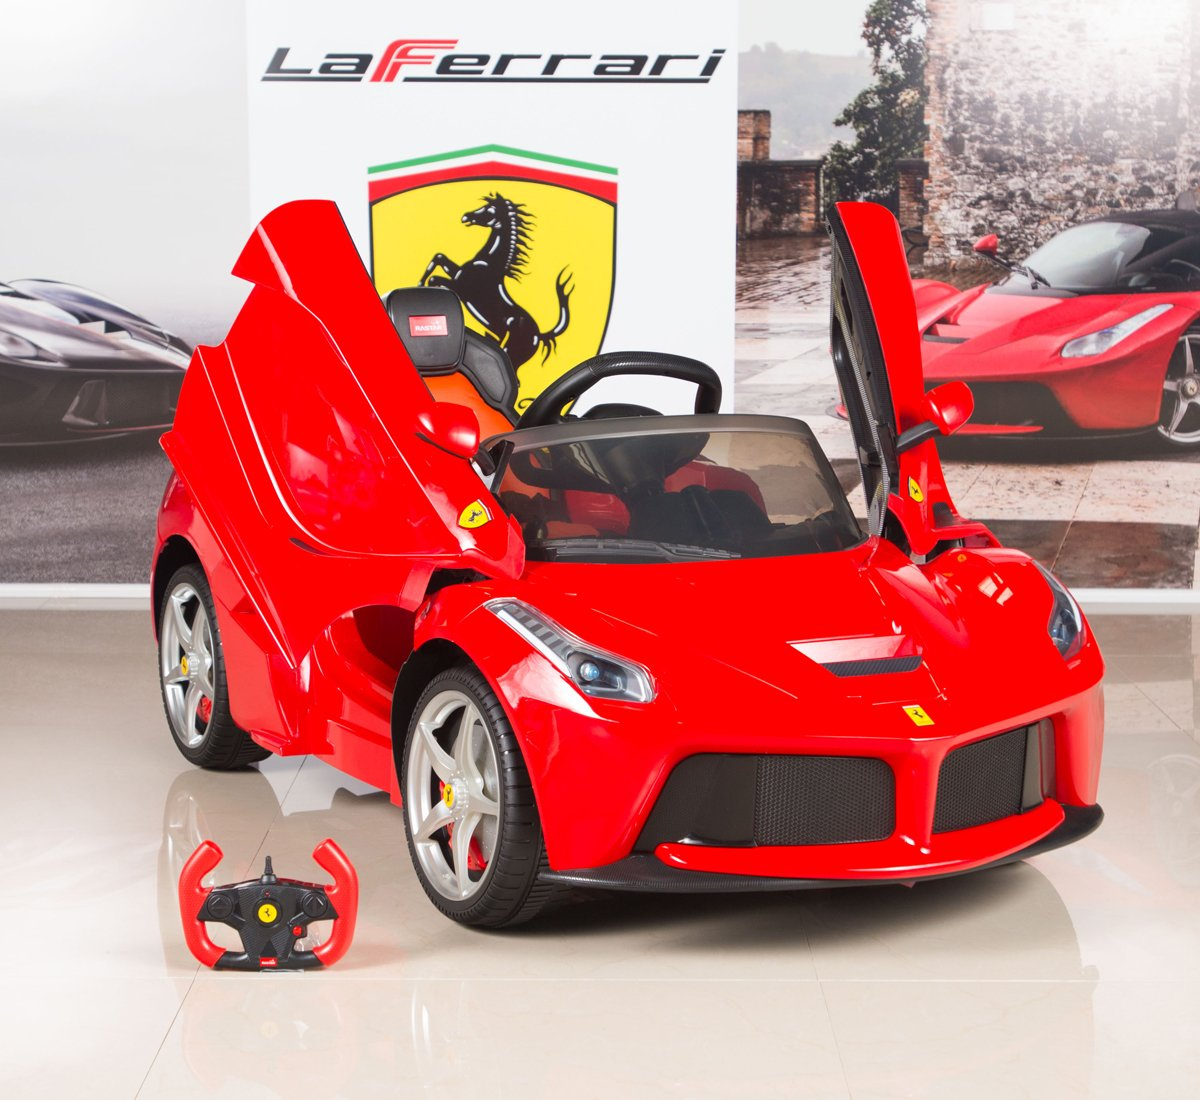 amazoncom big toys direct kids 82700 rastar la ferrari electric ride on car with mp3 and remote control 12v red toys games